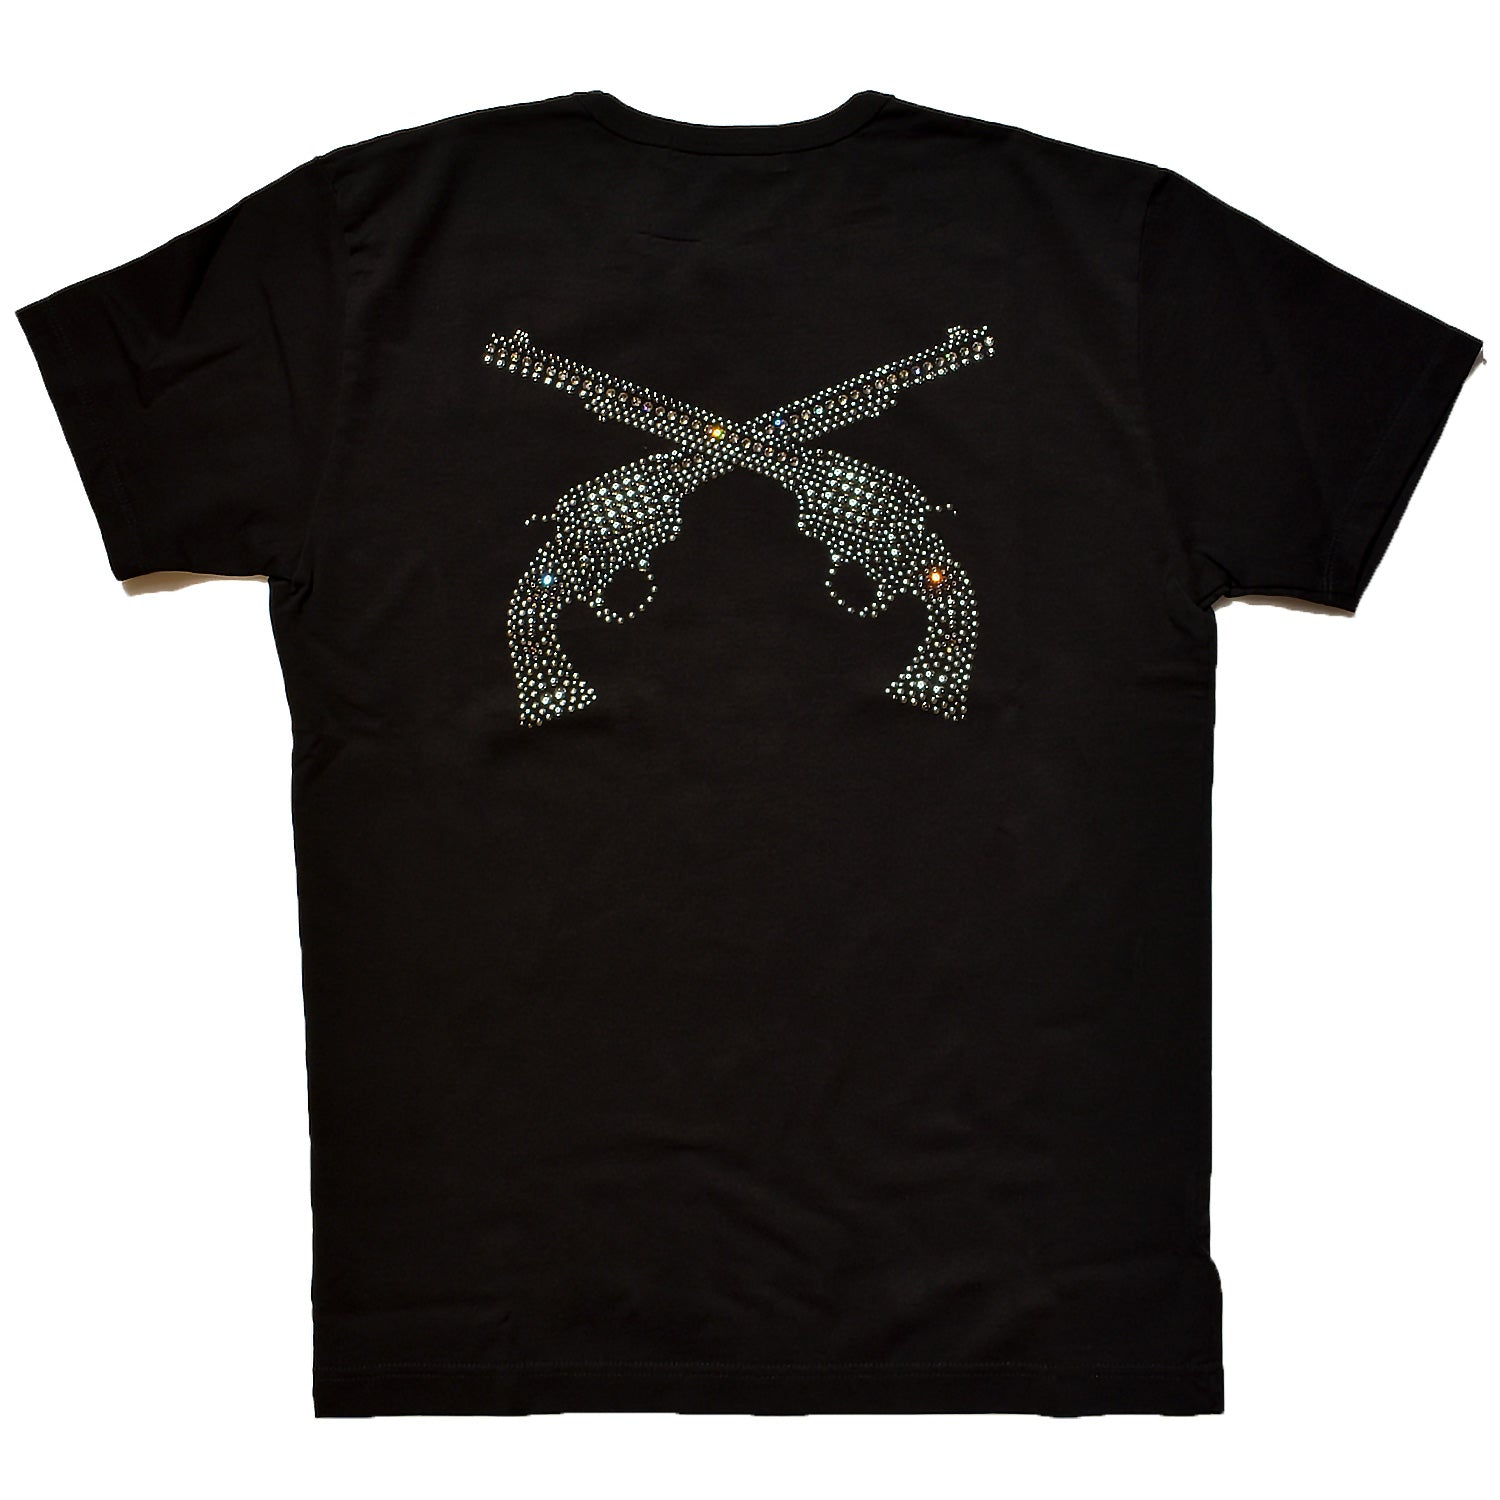 Load image into Gallery viewer, FREEDOM JERSEY PISTOL SWARO METAL REGULAR SIZE T BLACK×GUNMETAL